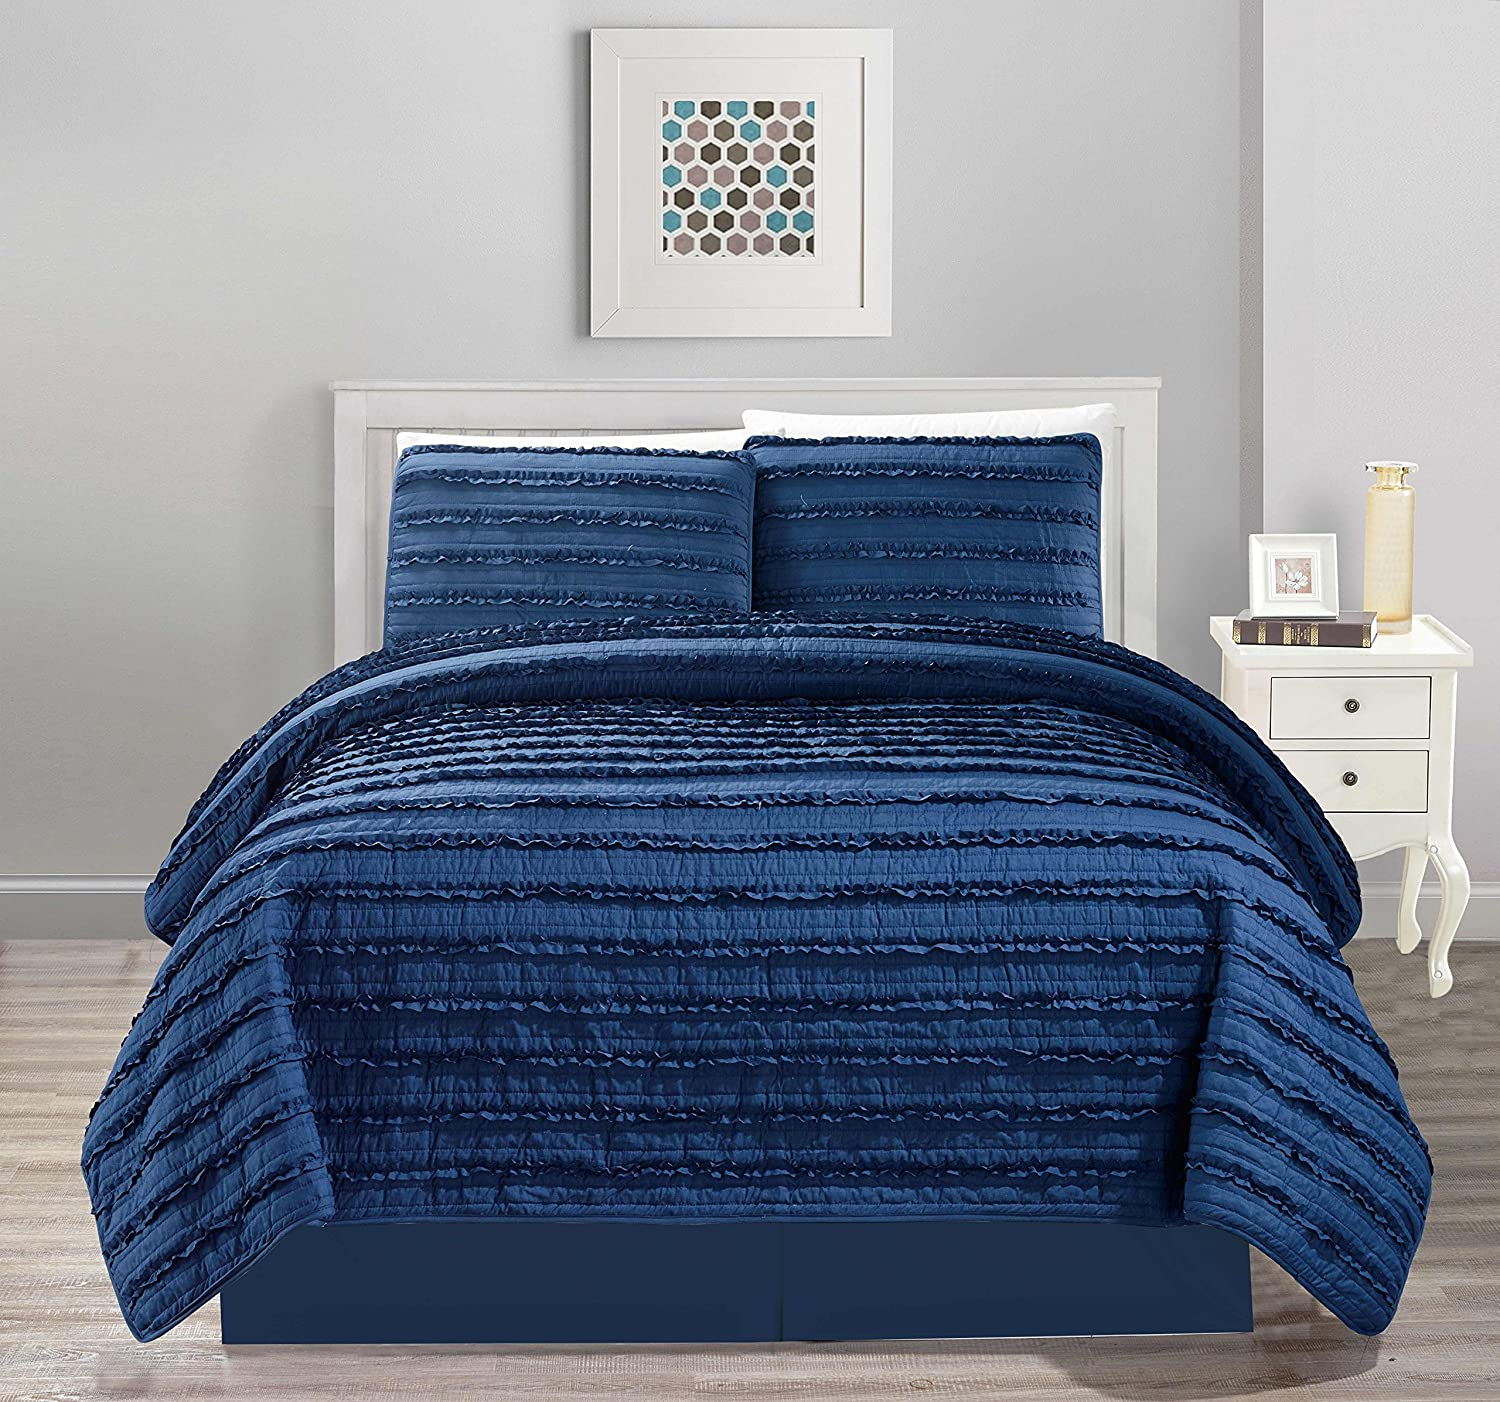 4pc Pleated Ruffle Bedspread/Quilt Set with Bedskirt (King Size, Navy Blue